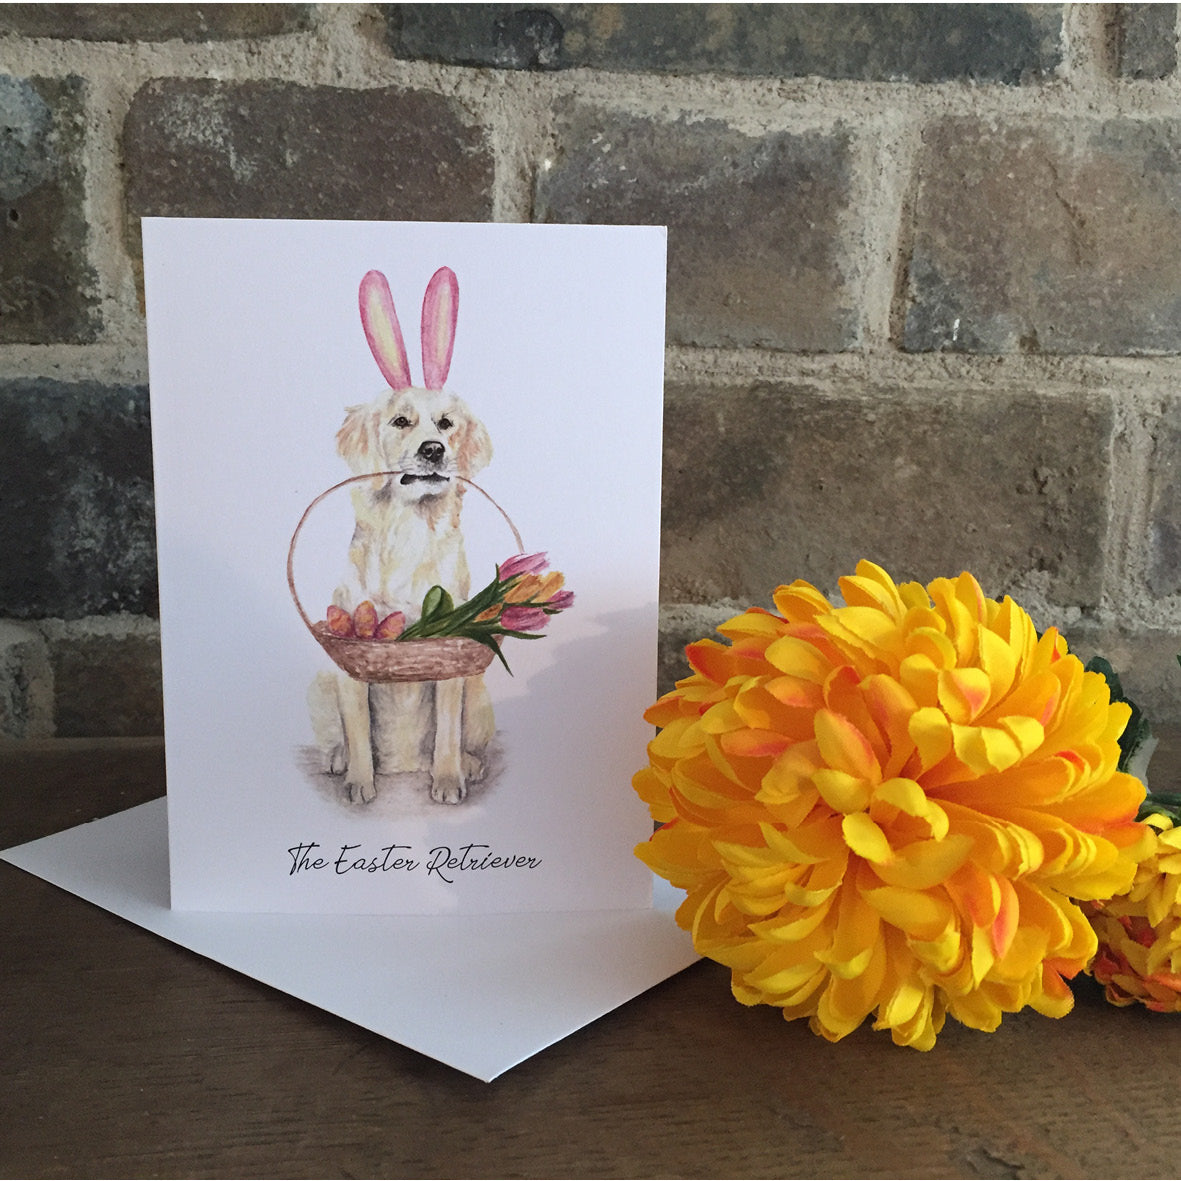 The Easter Retriever Greeting Card - Easter Card